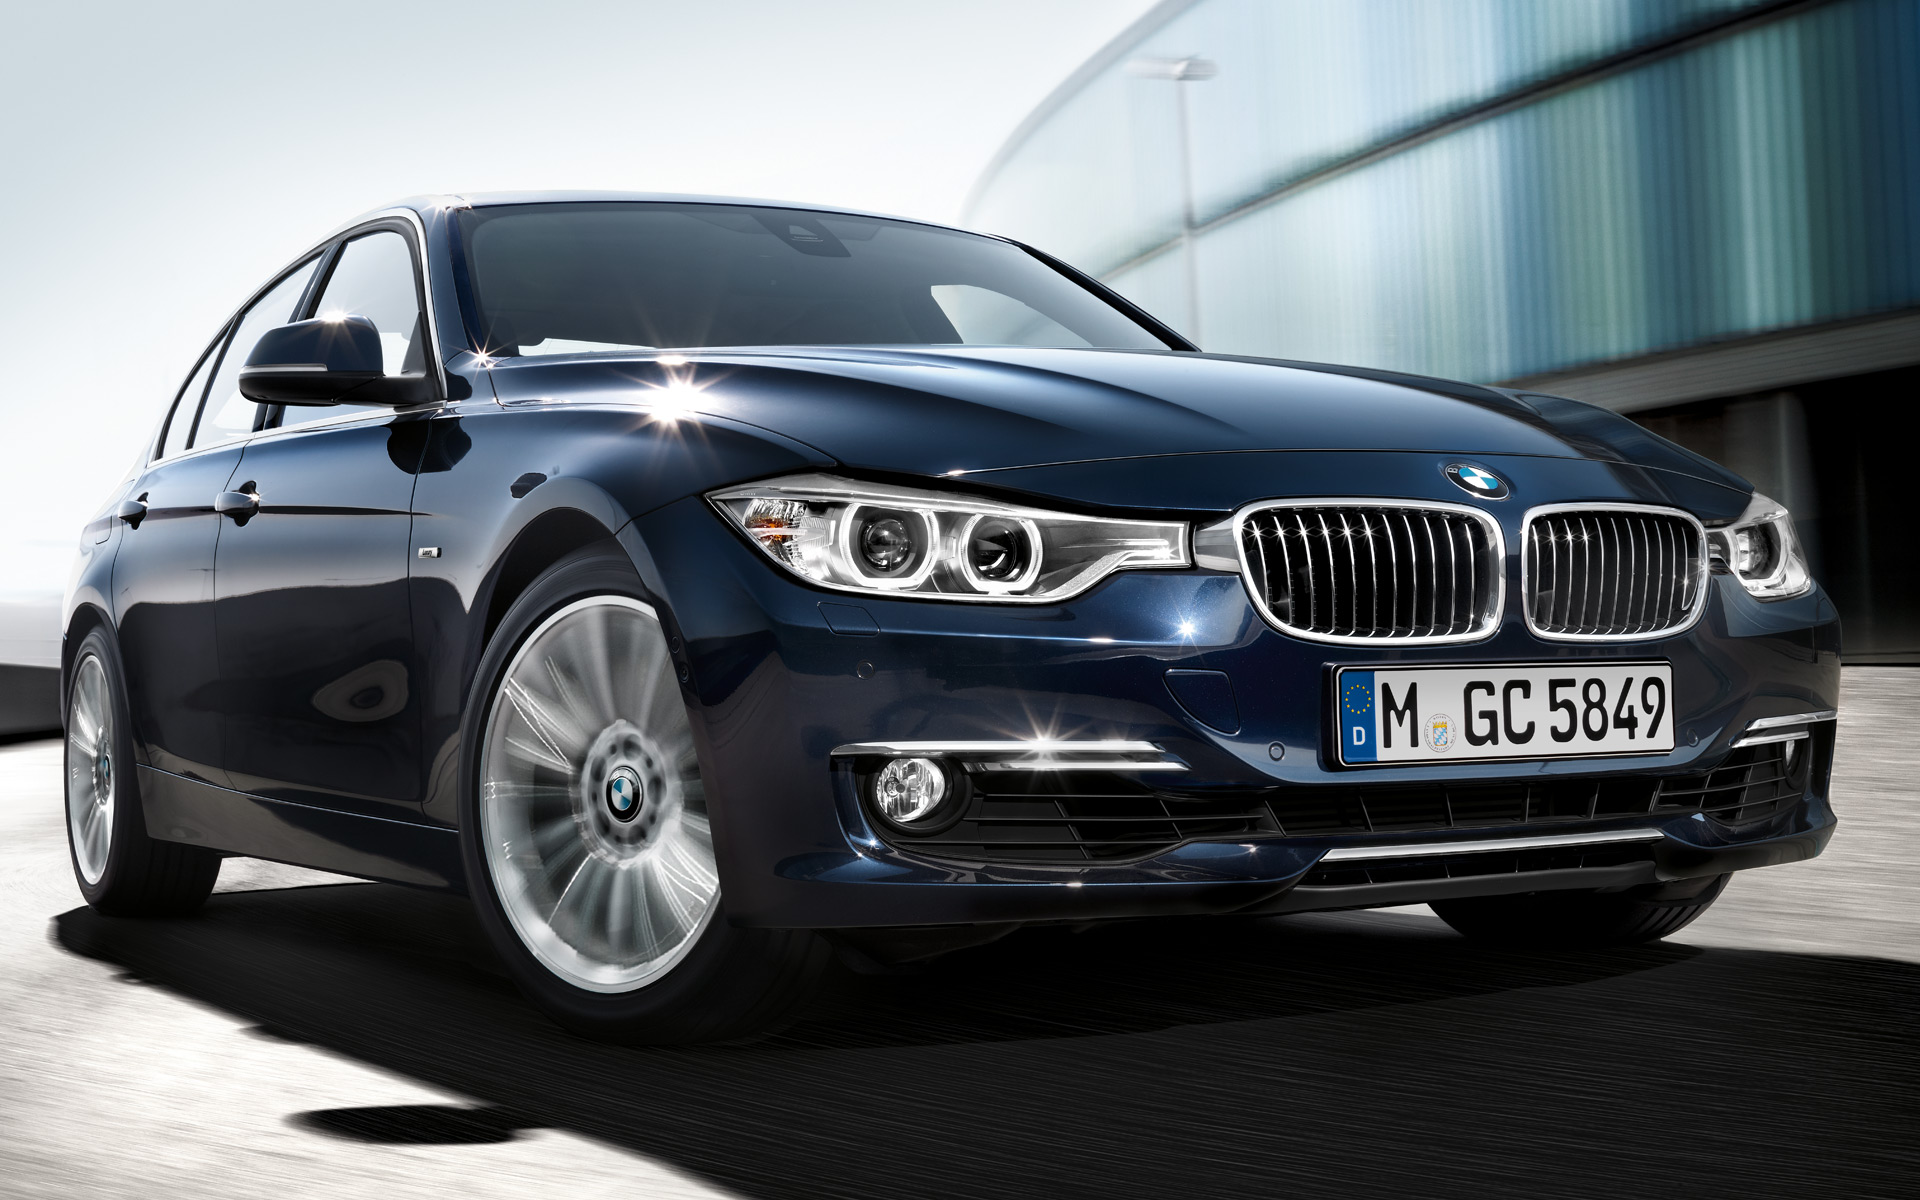 HD Wallpapers of BMW 3 Series - X Auto